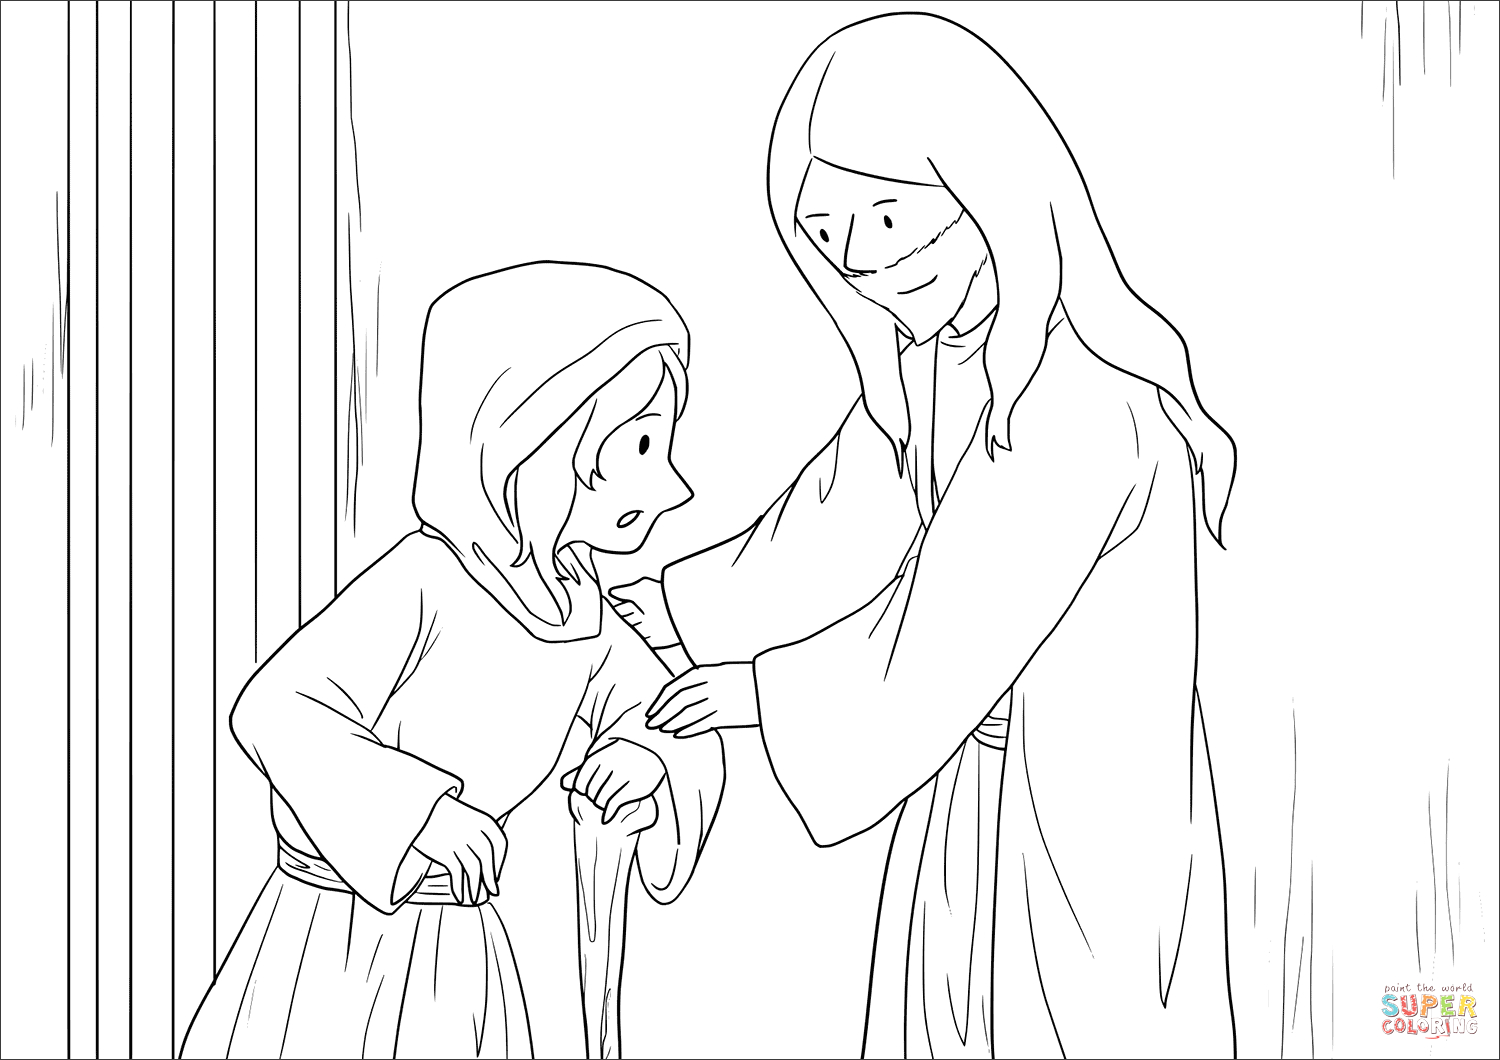 Jesus Heals the Crippled Woman Coloring Page Luxury Jesus Heals the Crippled Woman Coloring Page